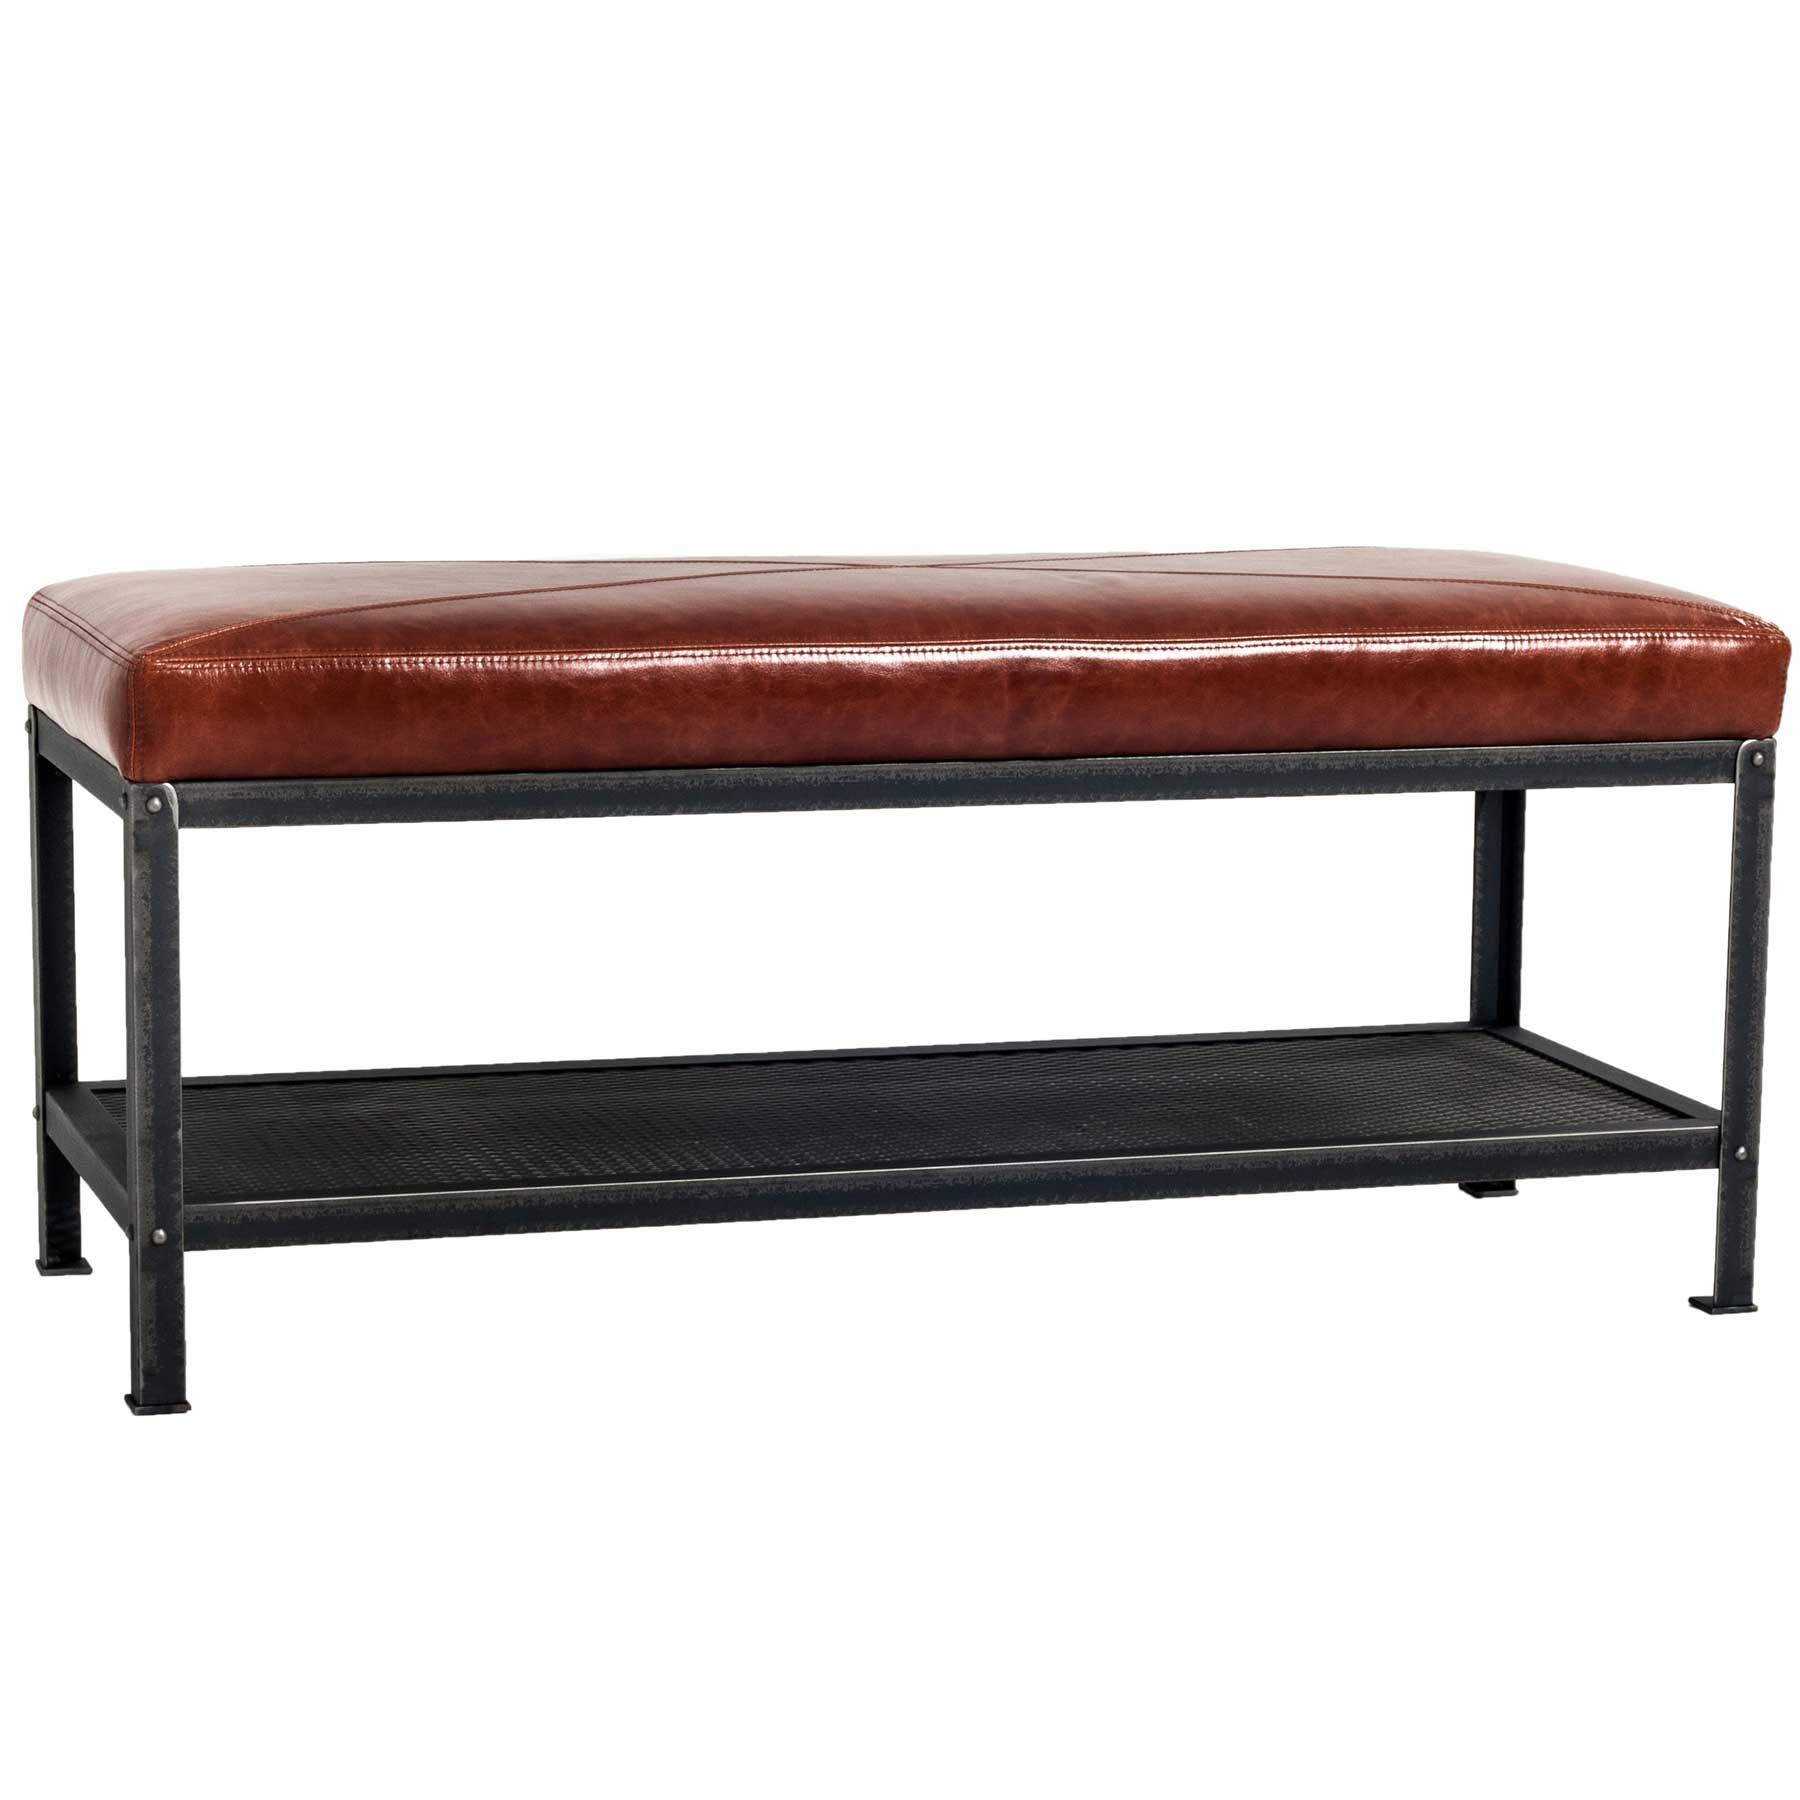 Industrial Warehouse Bench By Charleston Forge W 47 X D 18 5 X H 19 5